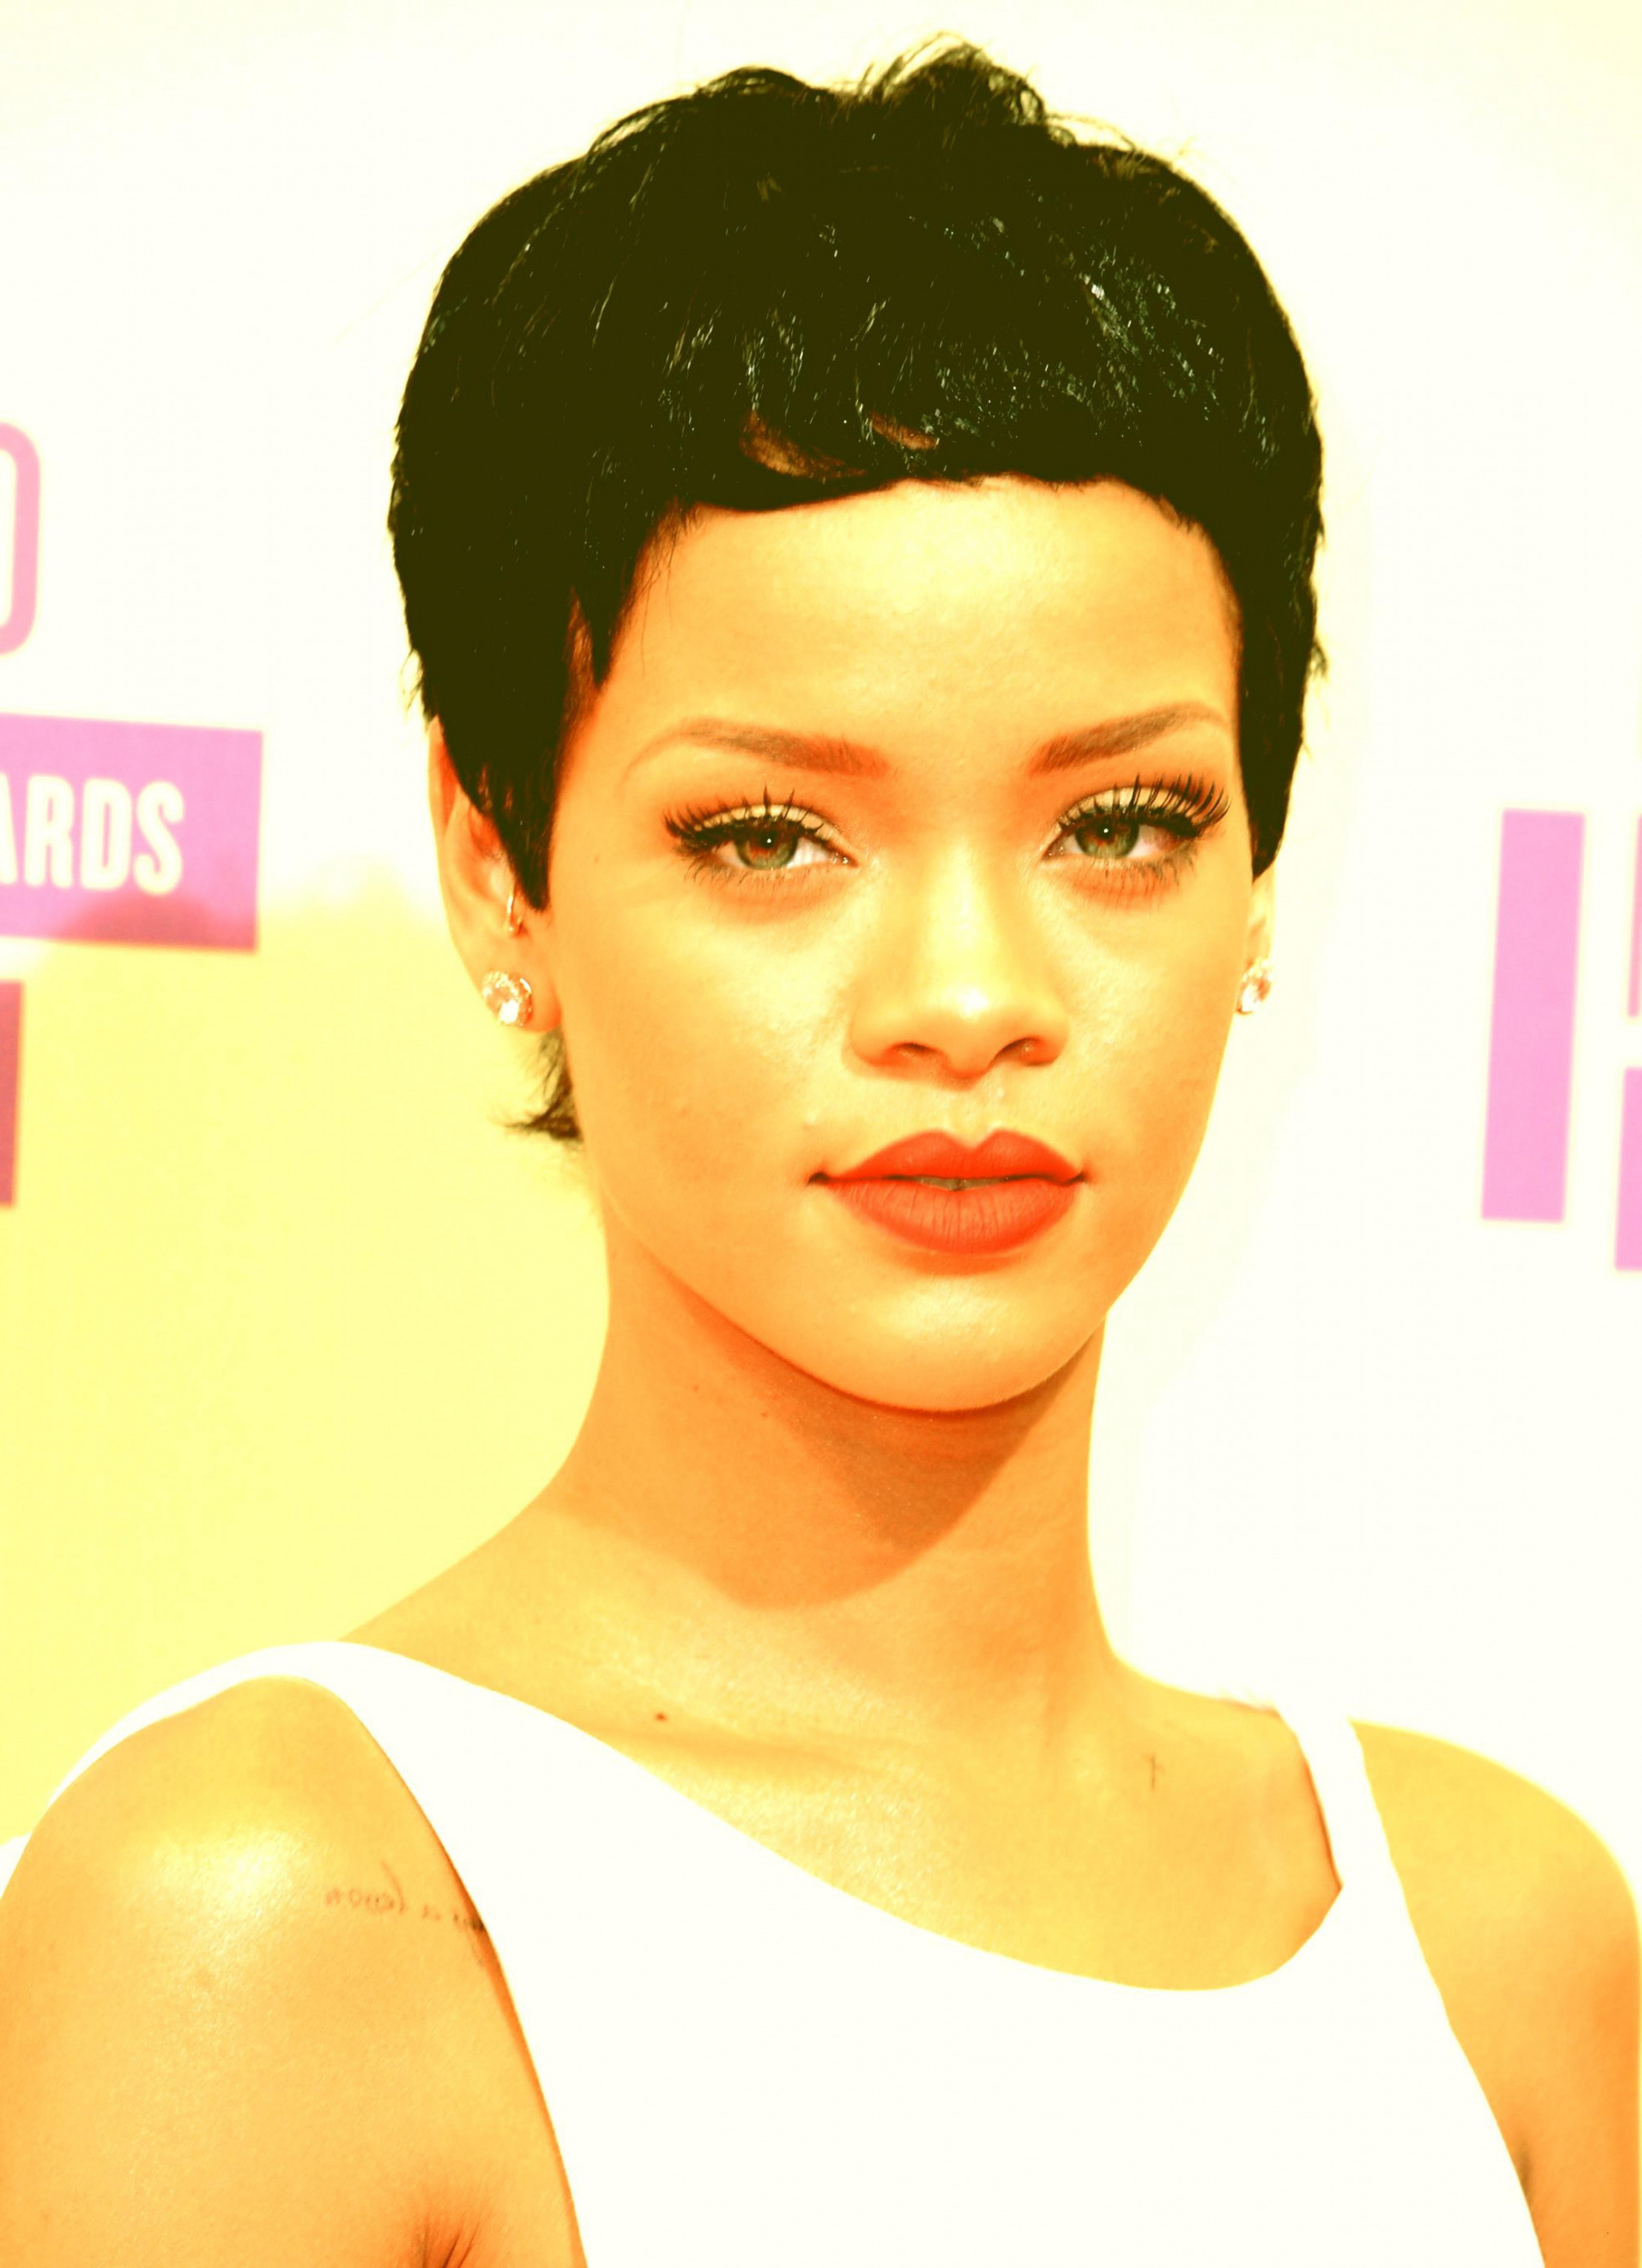 Short Hairstyles For African Women Best Of Short Hairstyles Black Pertaining To African Women Short Hairstyles (View 22 of 25)